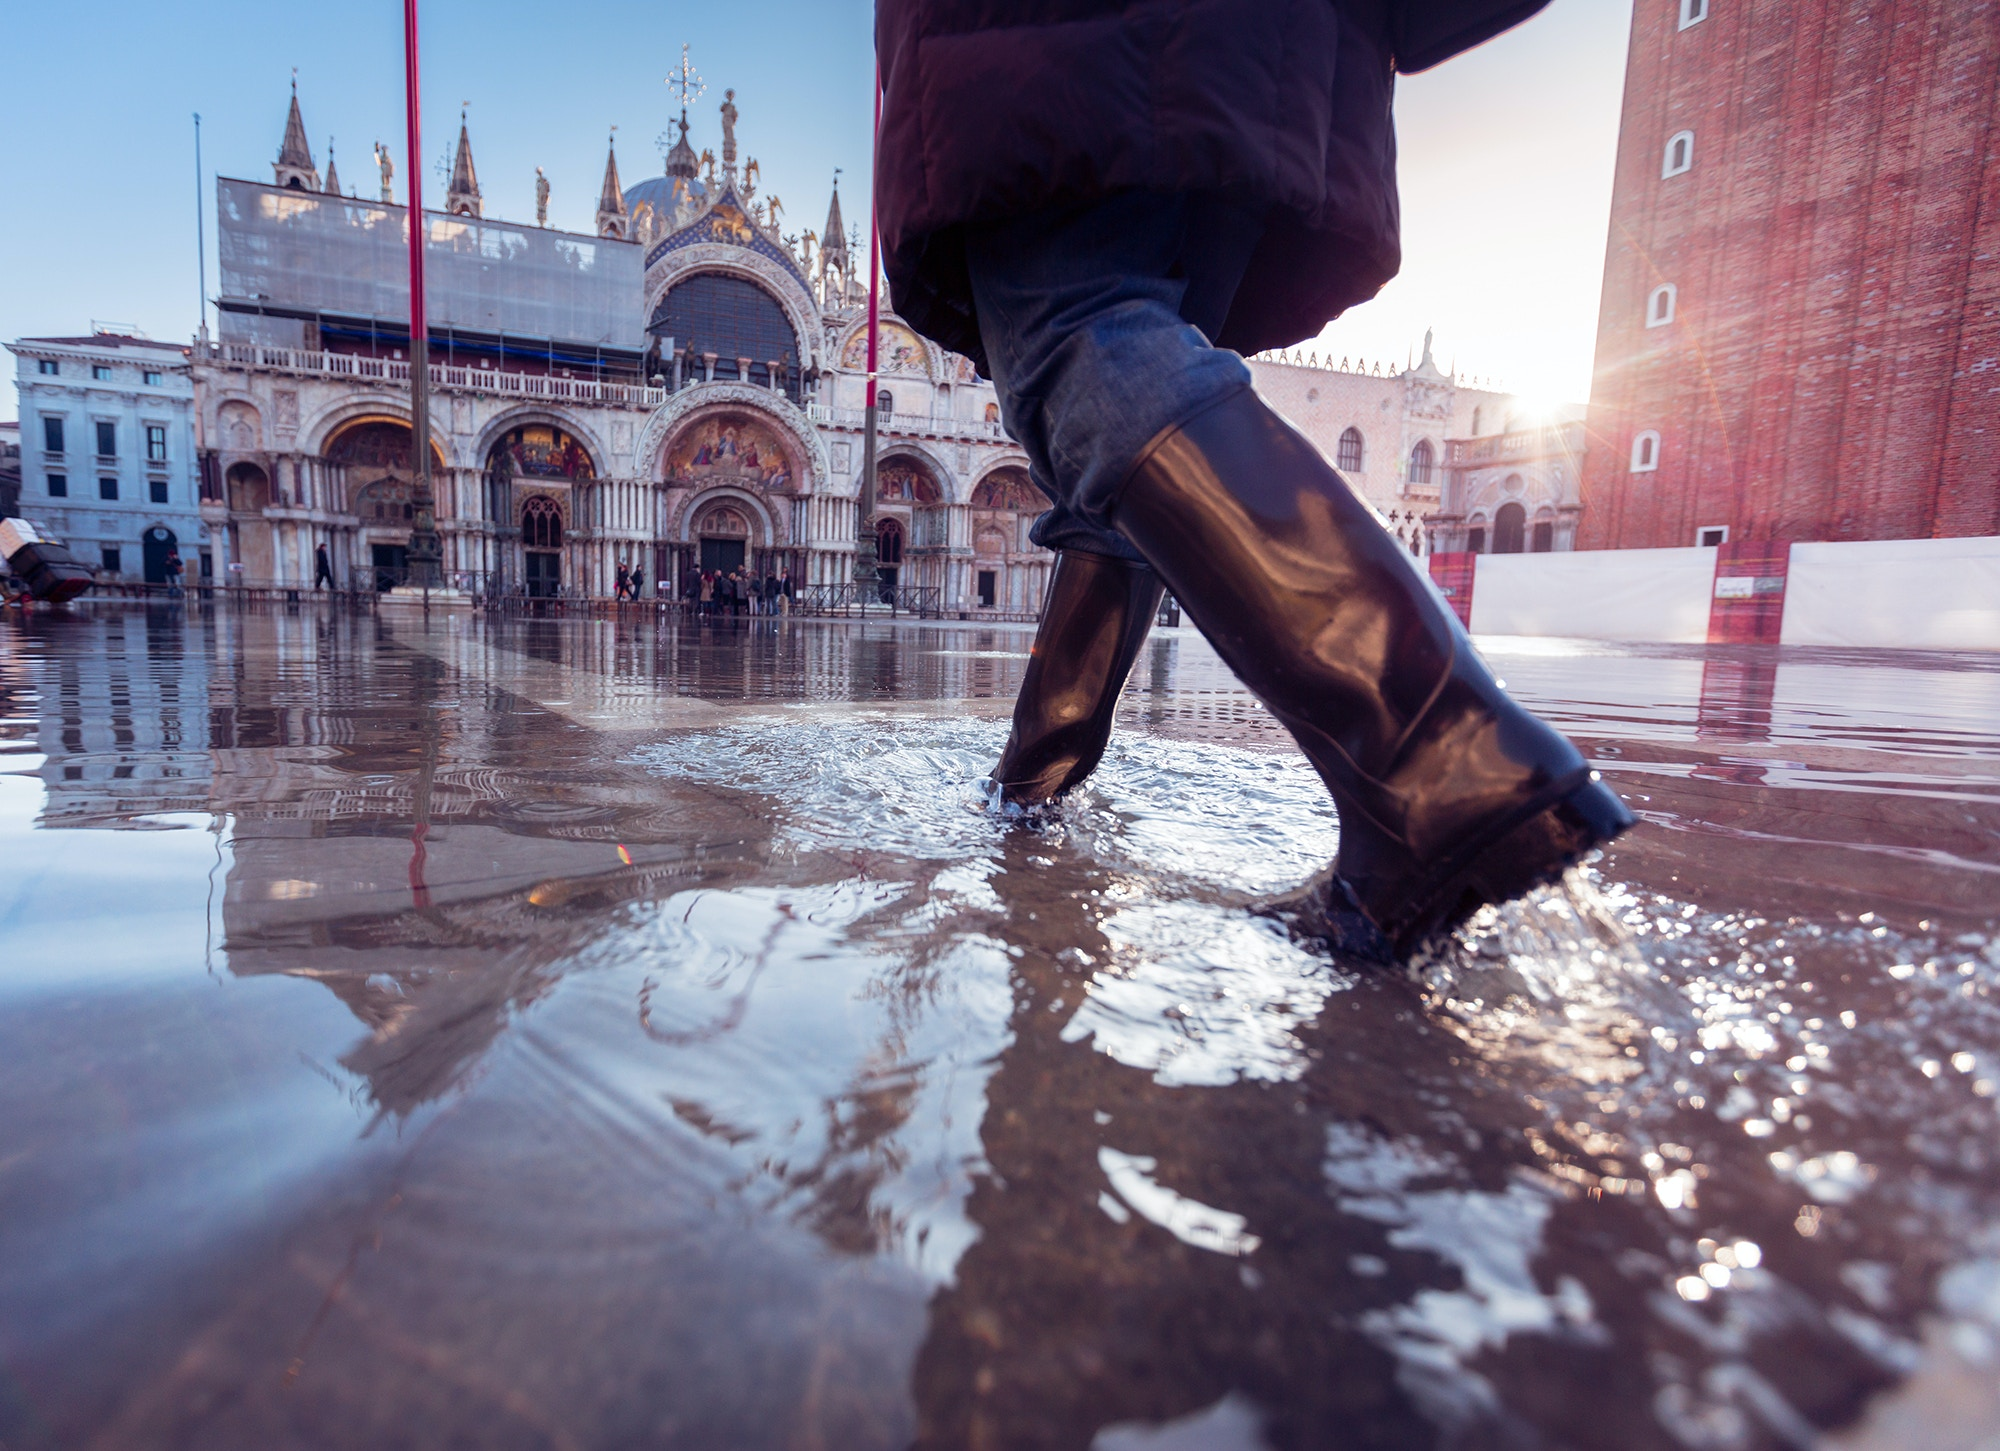 A person in rubber boots walking in Venice's Piazza San Marco © Nullplus / Getty Images